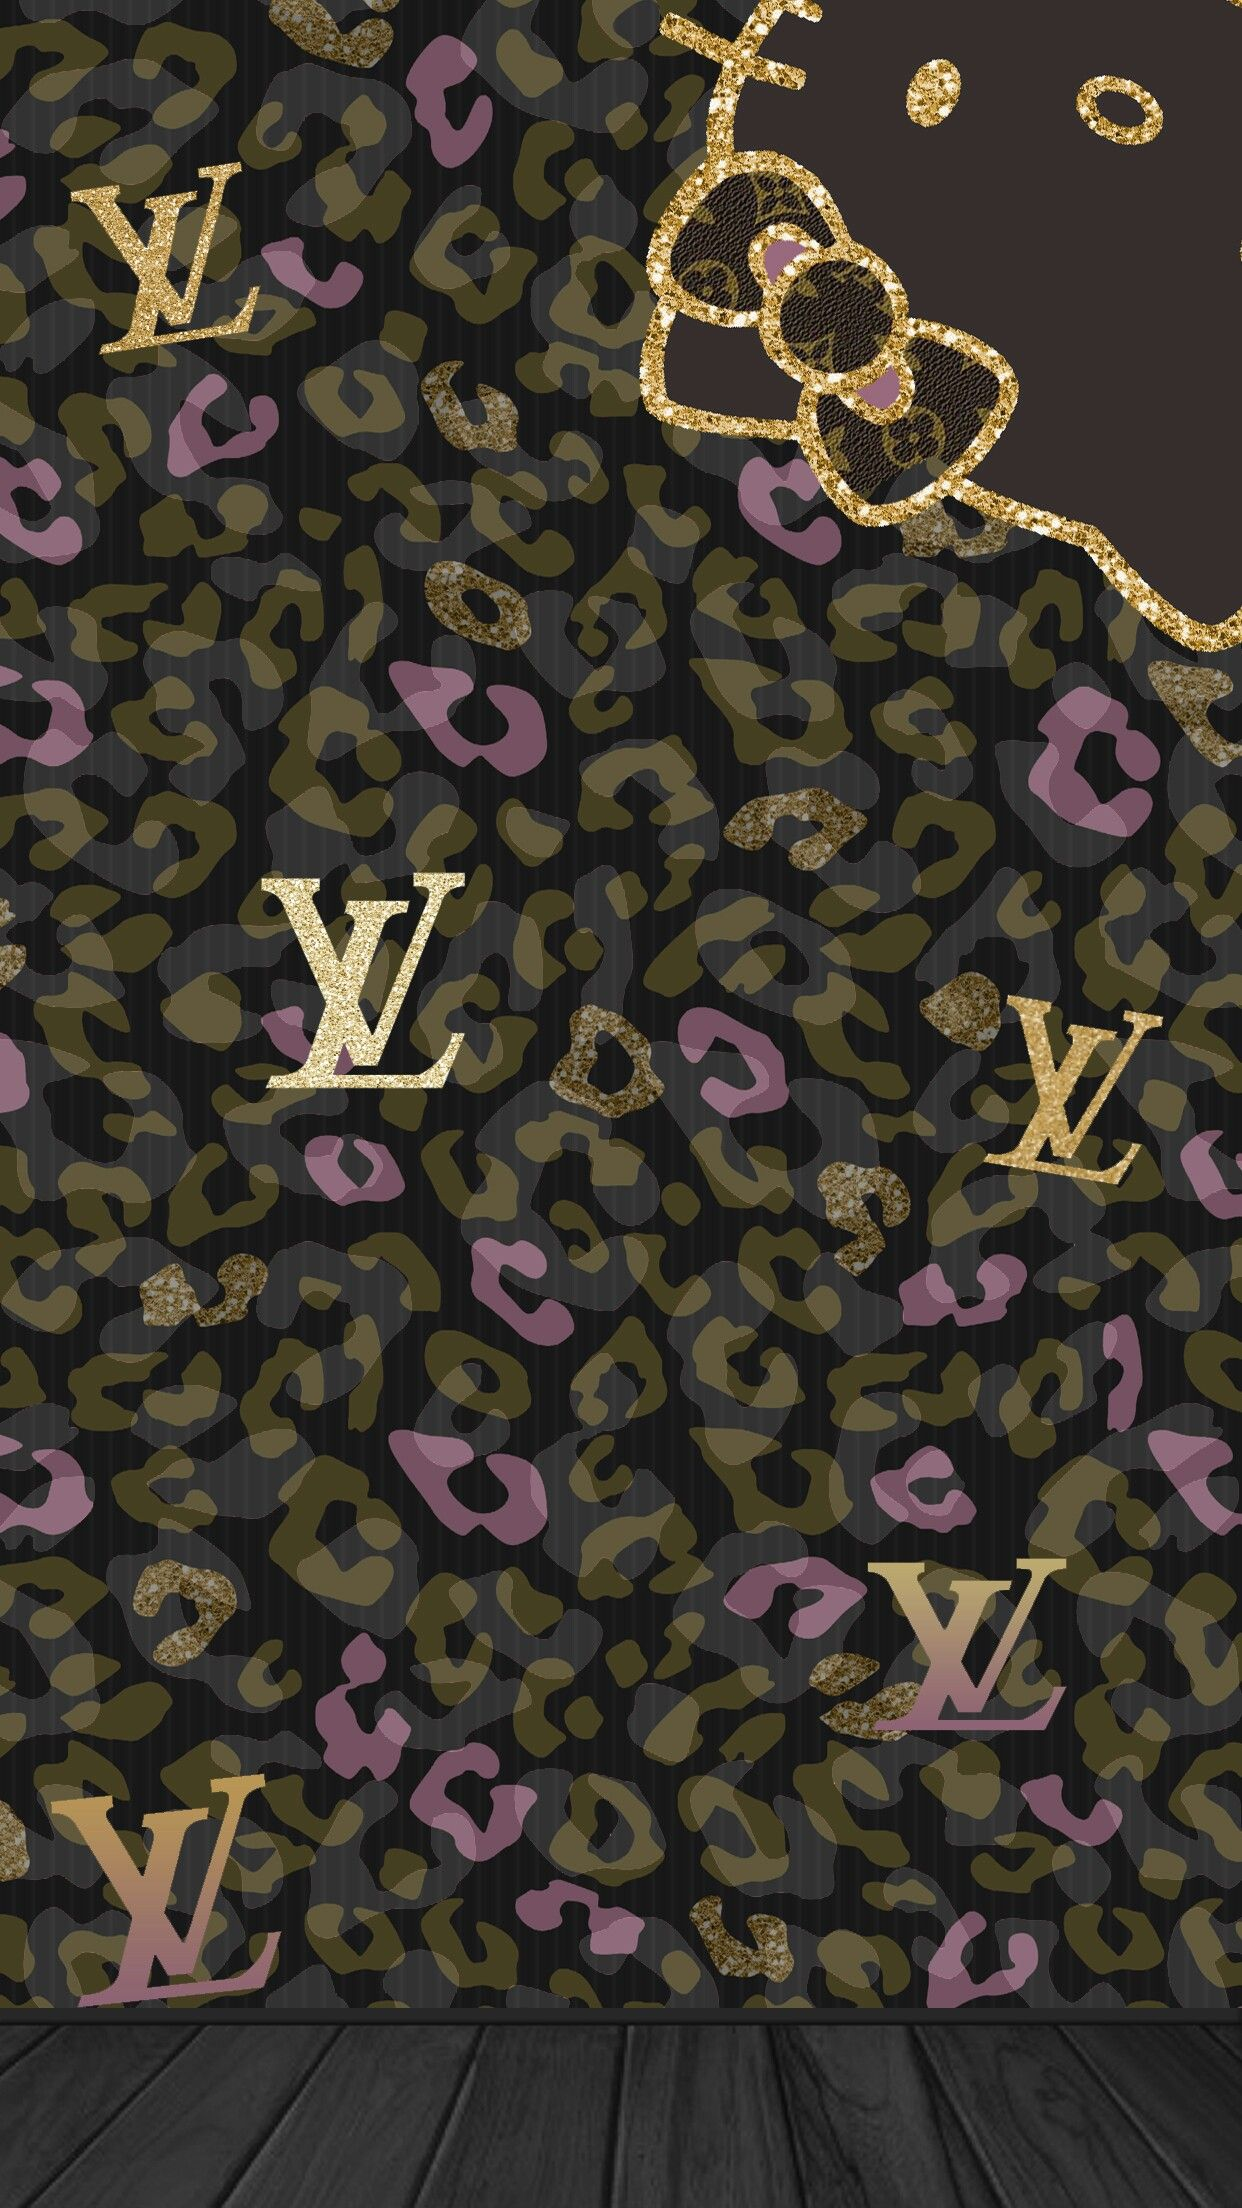 Wallpaper iphone louis vuitton - Iphone Wall Lv Hk Tjn